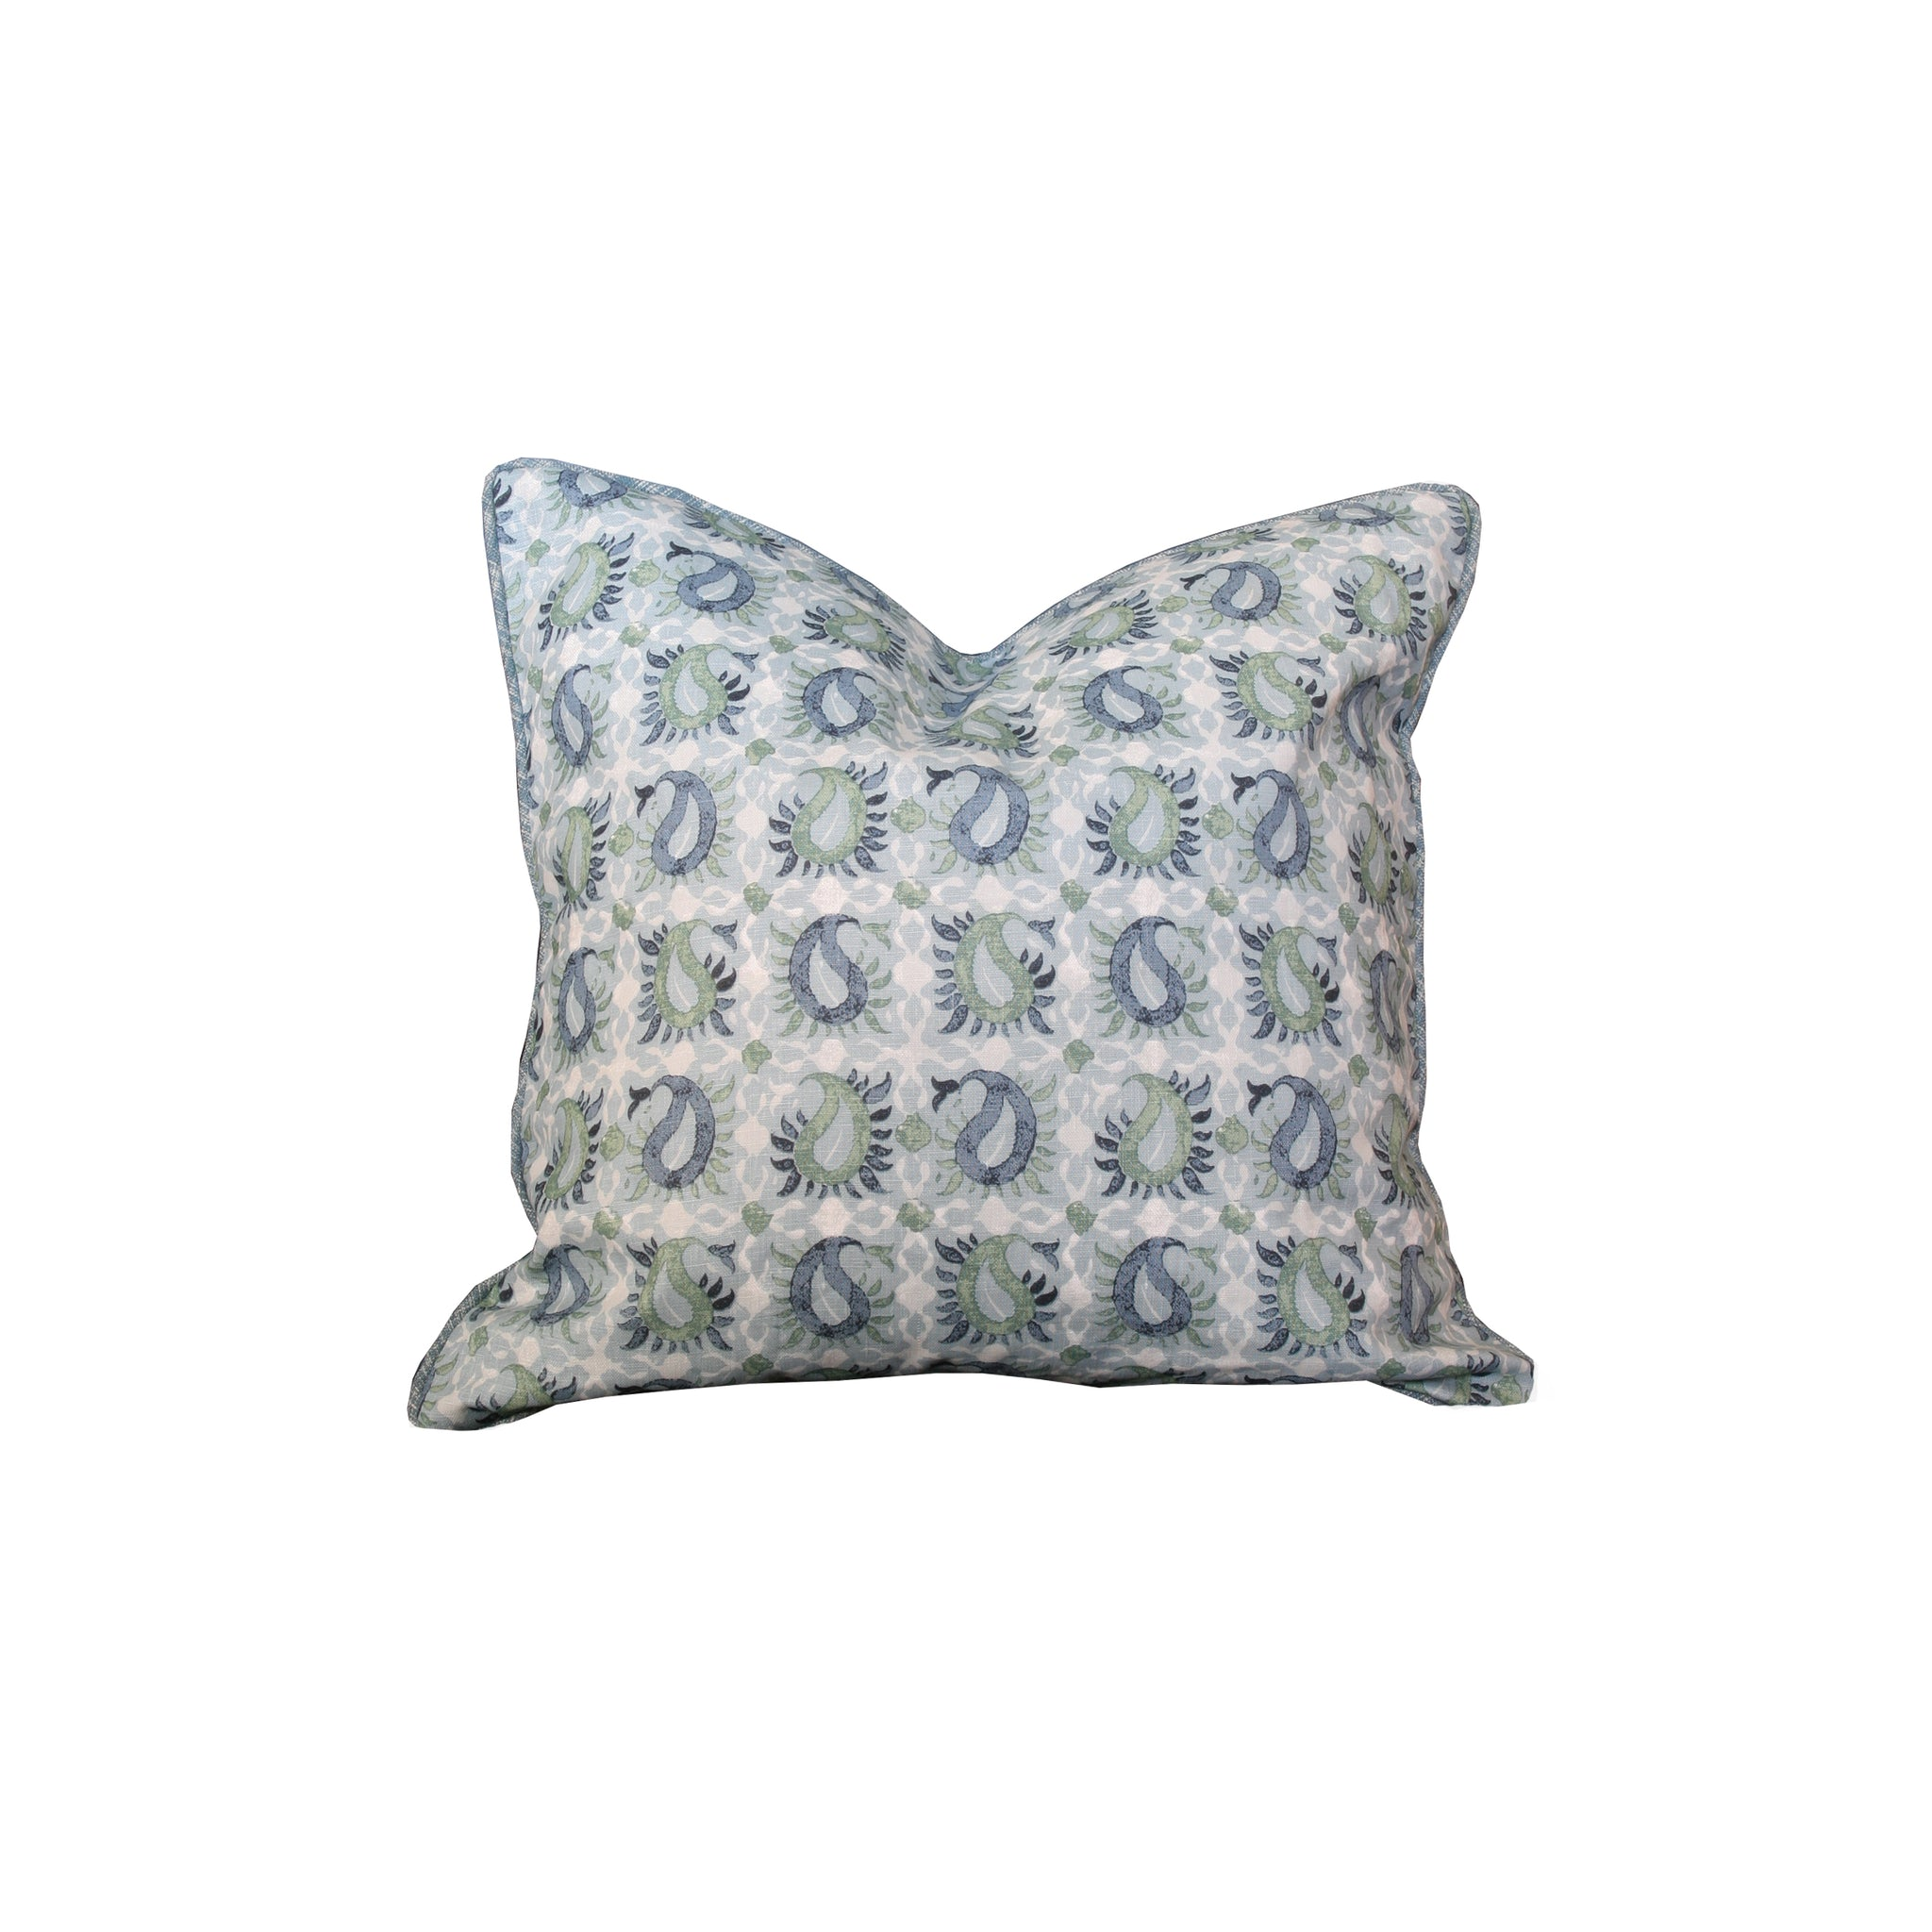 Hawthorne House Bespoke 20 x 20 pillow in Martyn Lawrence Pausley Block print in blue and green with contrast back and welt in blue textured woven linen